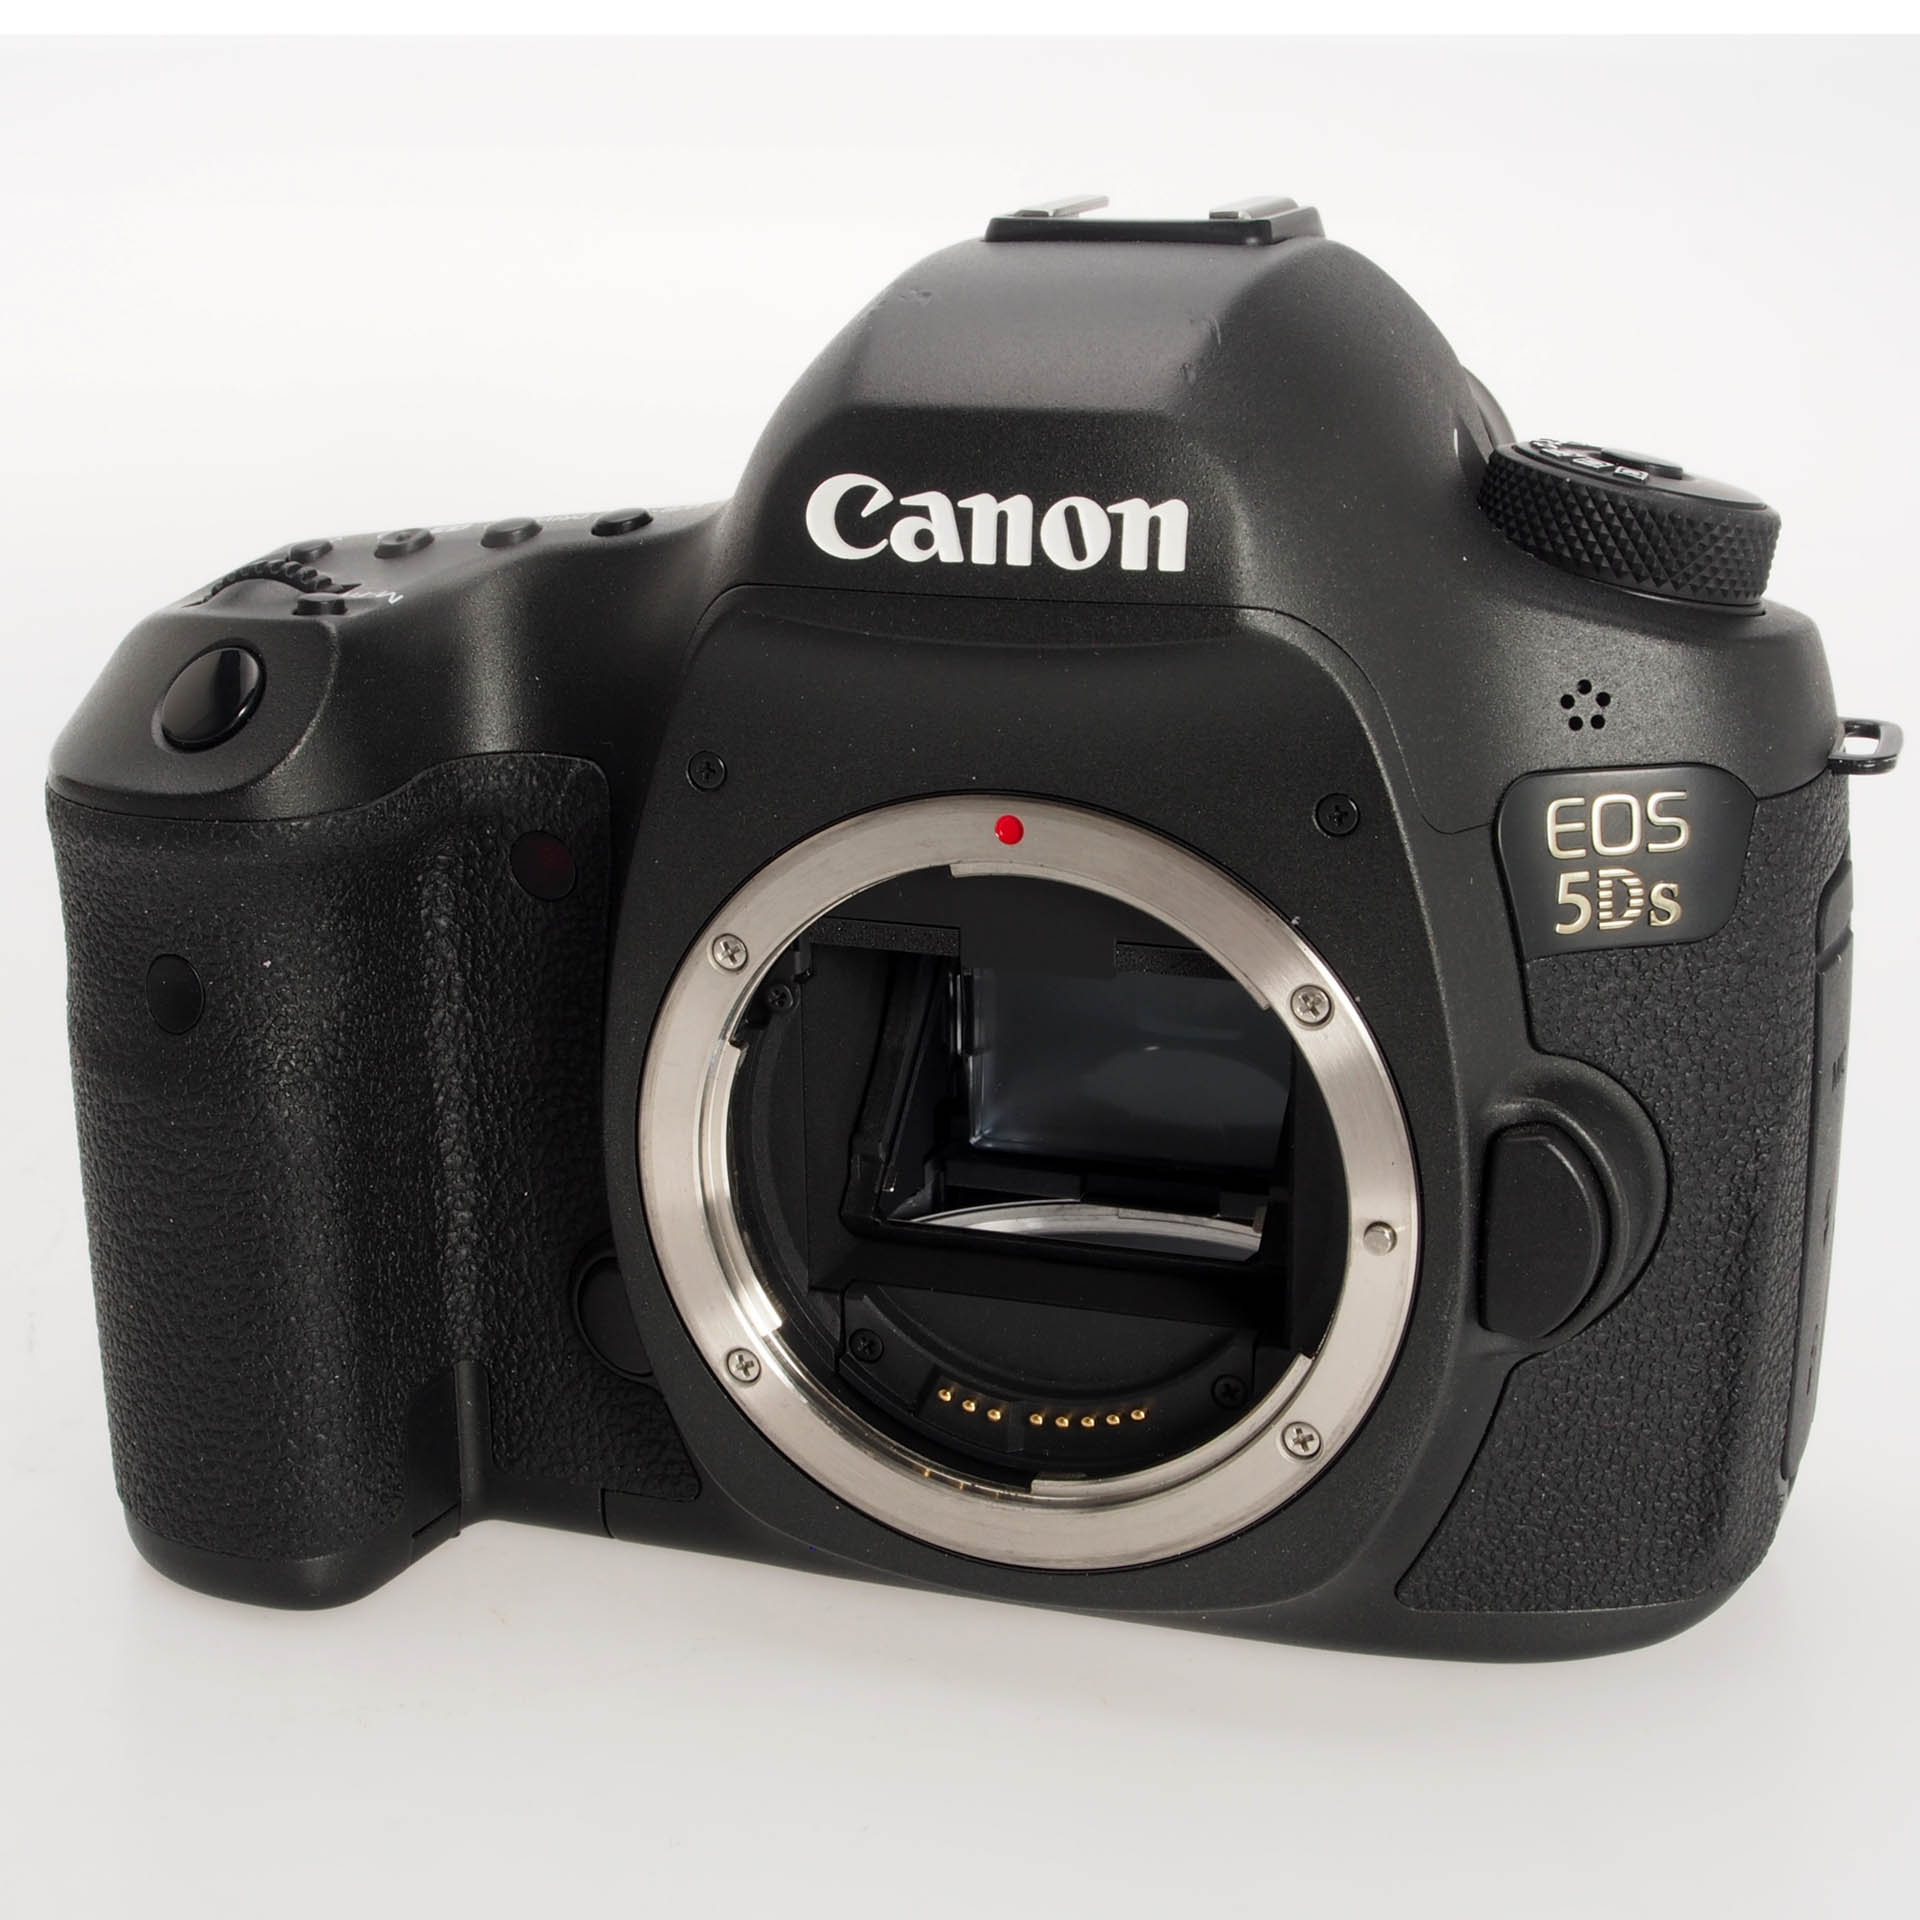 Camera Dslr Used Cameras For Sale used cameras dslrs national camera exchange canon eos 5ds 50 6 mp dslr full frame body 0581c002 boxed condition ex